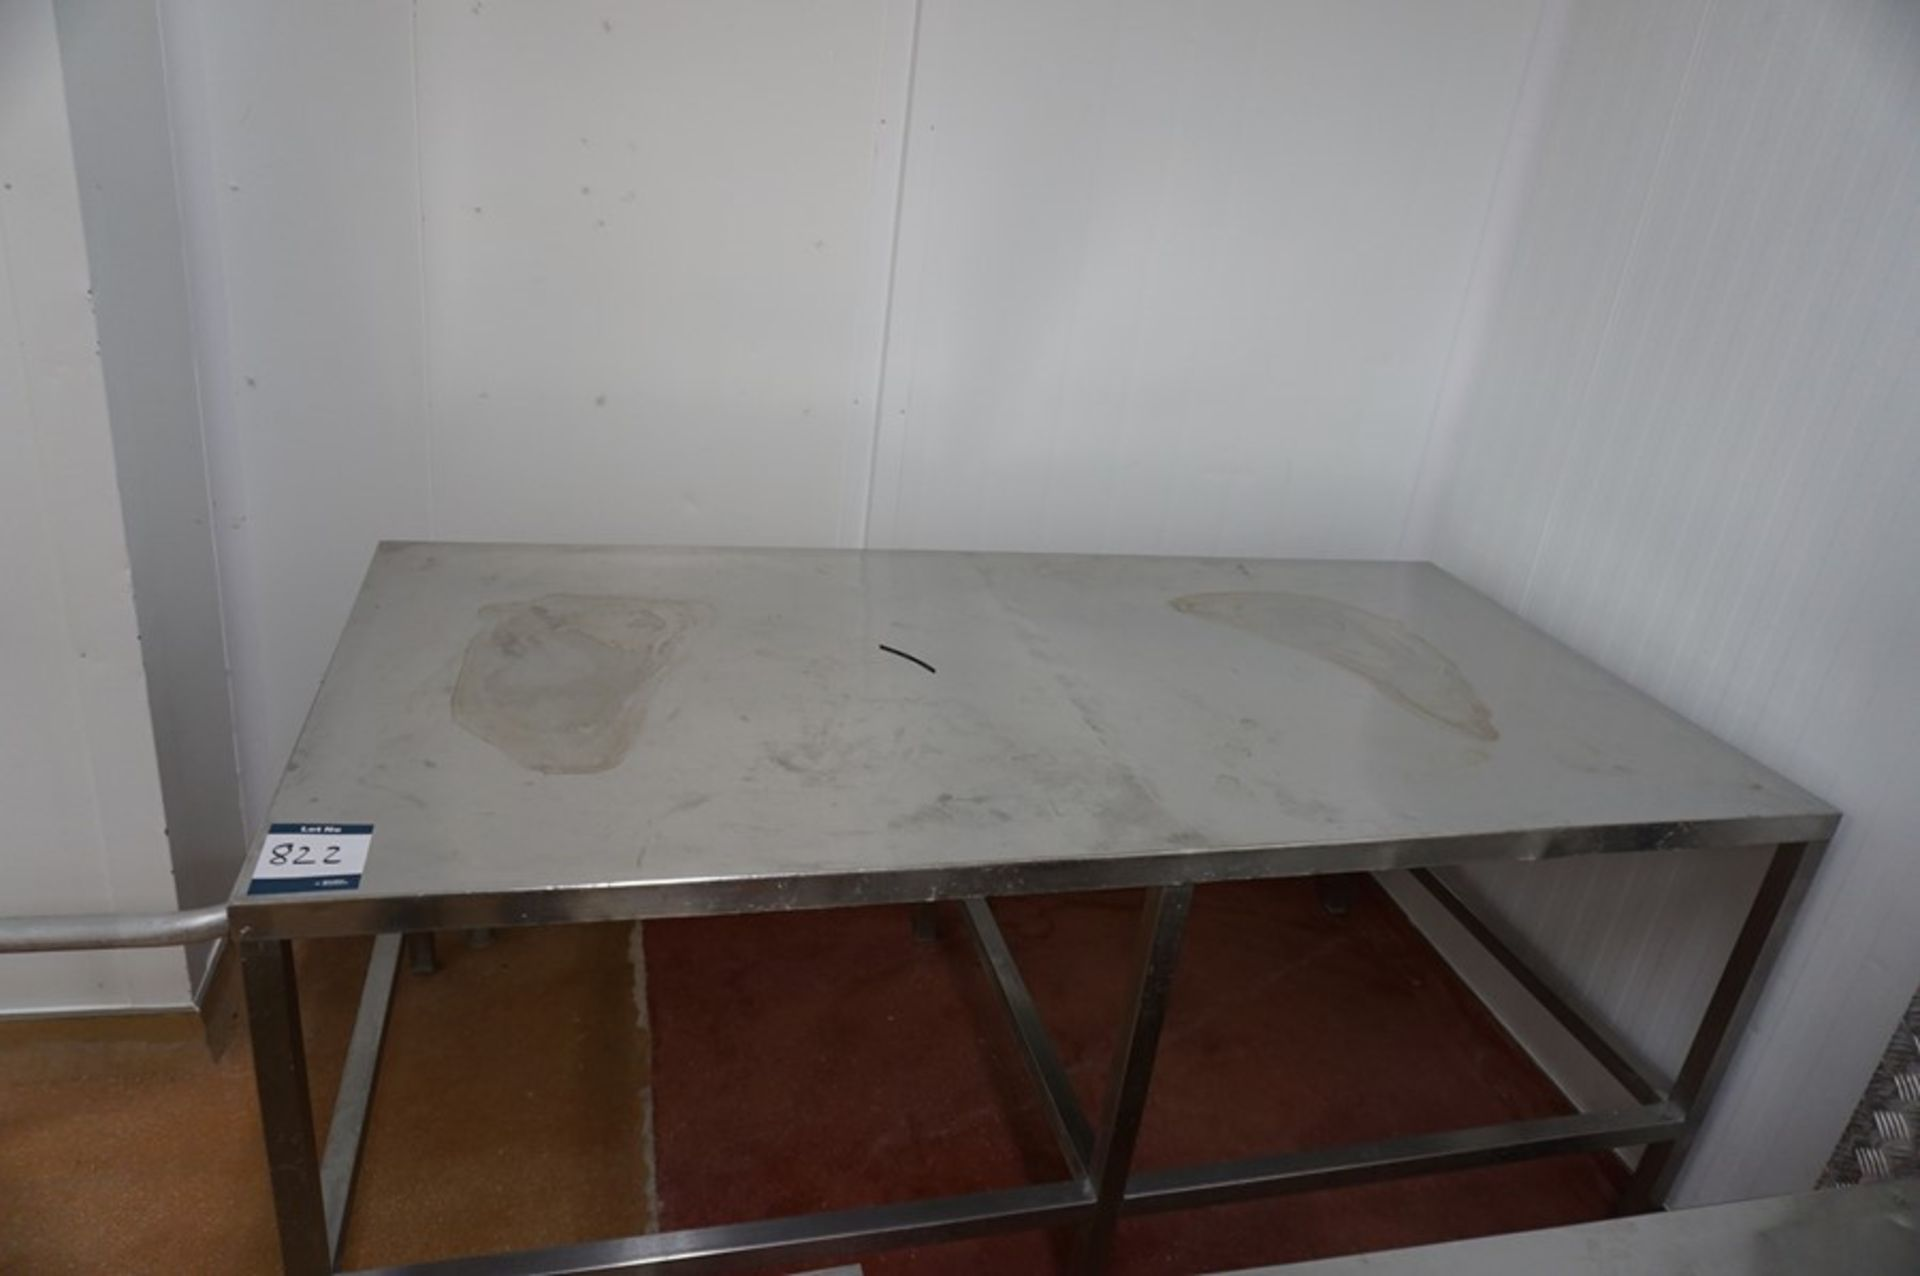 Lot 822 - 2 x Various stainless steel prep tables, each 1m x 2m x 0.86m (h) as lotted